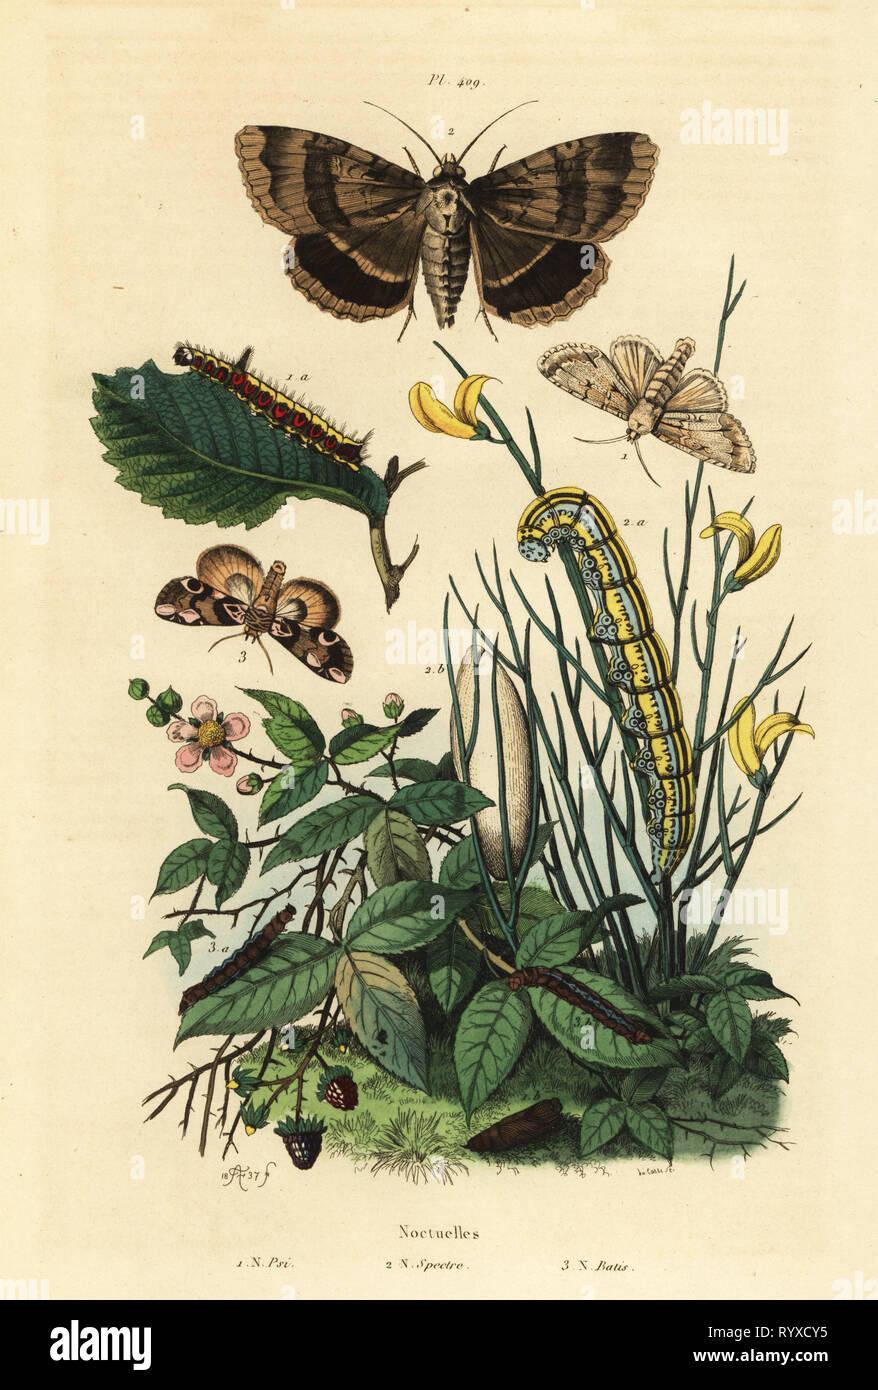 Grey dagger moth and larva, Acronicta psi 1, Apopestes spectrum moth and larva 2, peach blossom moth and caterpillar, Thyatira batis 3. Noctuelles psi, spectre, batis. Handcoloured steel engraving by du Casse after an illustration by Adolph Fries from Felix-Edouard Guerin-Meneville's Dictionnaire Pittoresque d'Histoire Naturelle (Picturesque Dictionary of Natural History), Paris, 1834-39. - Stock Image